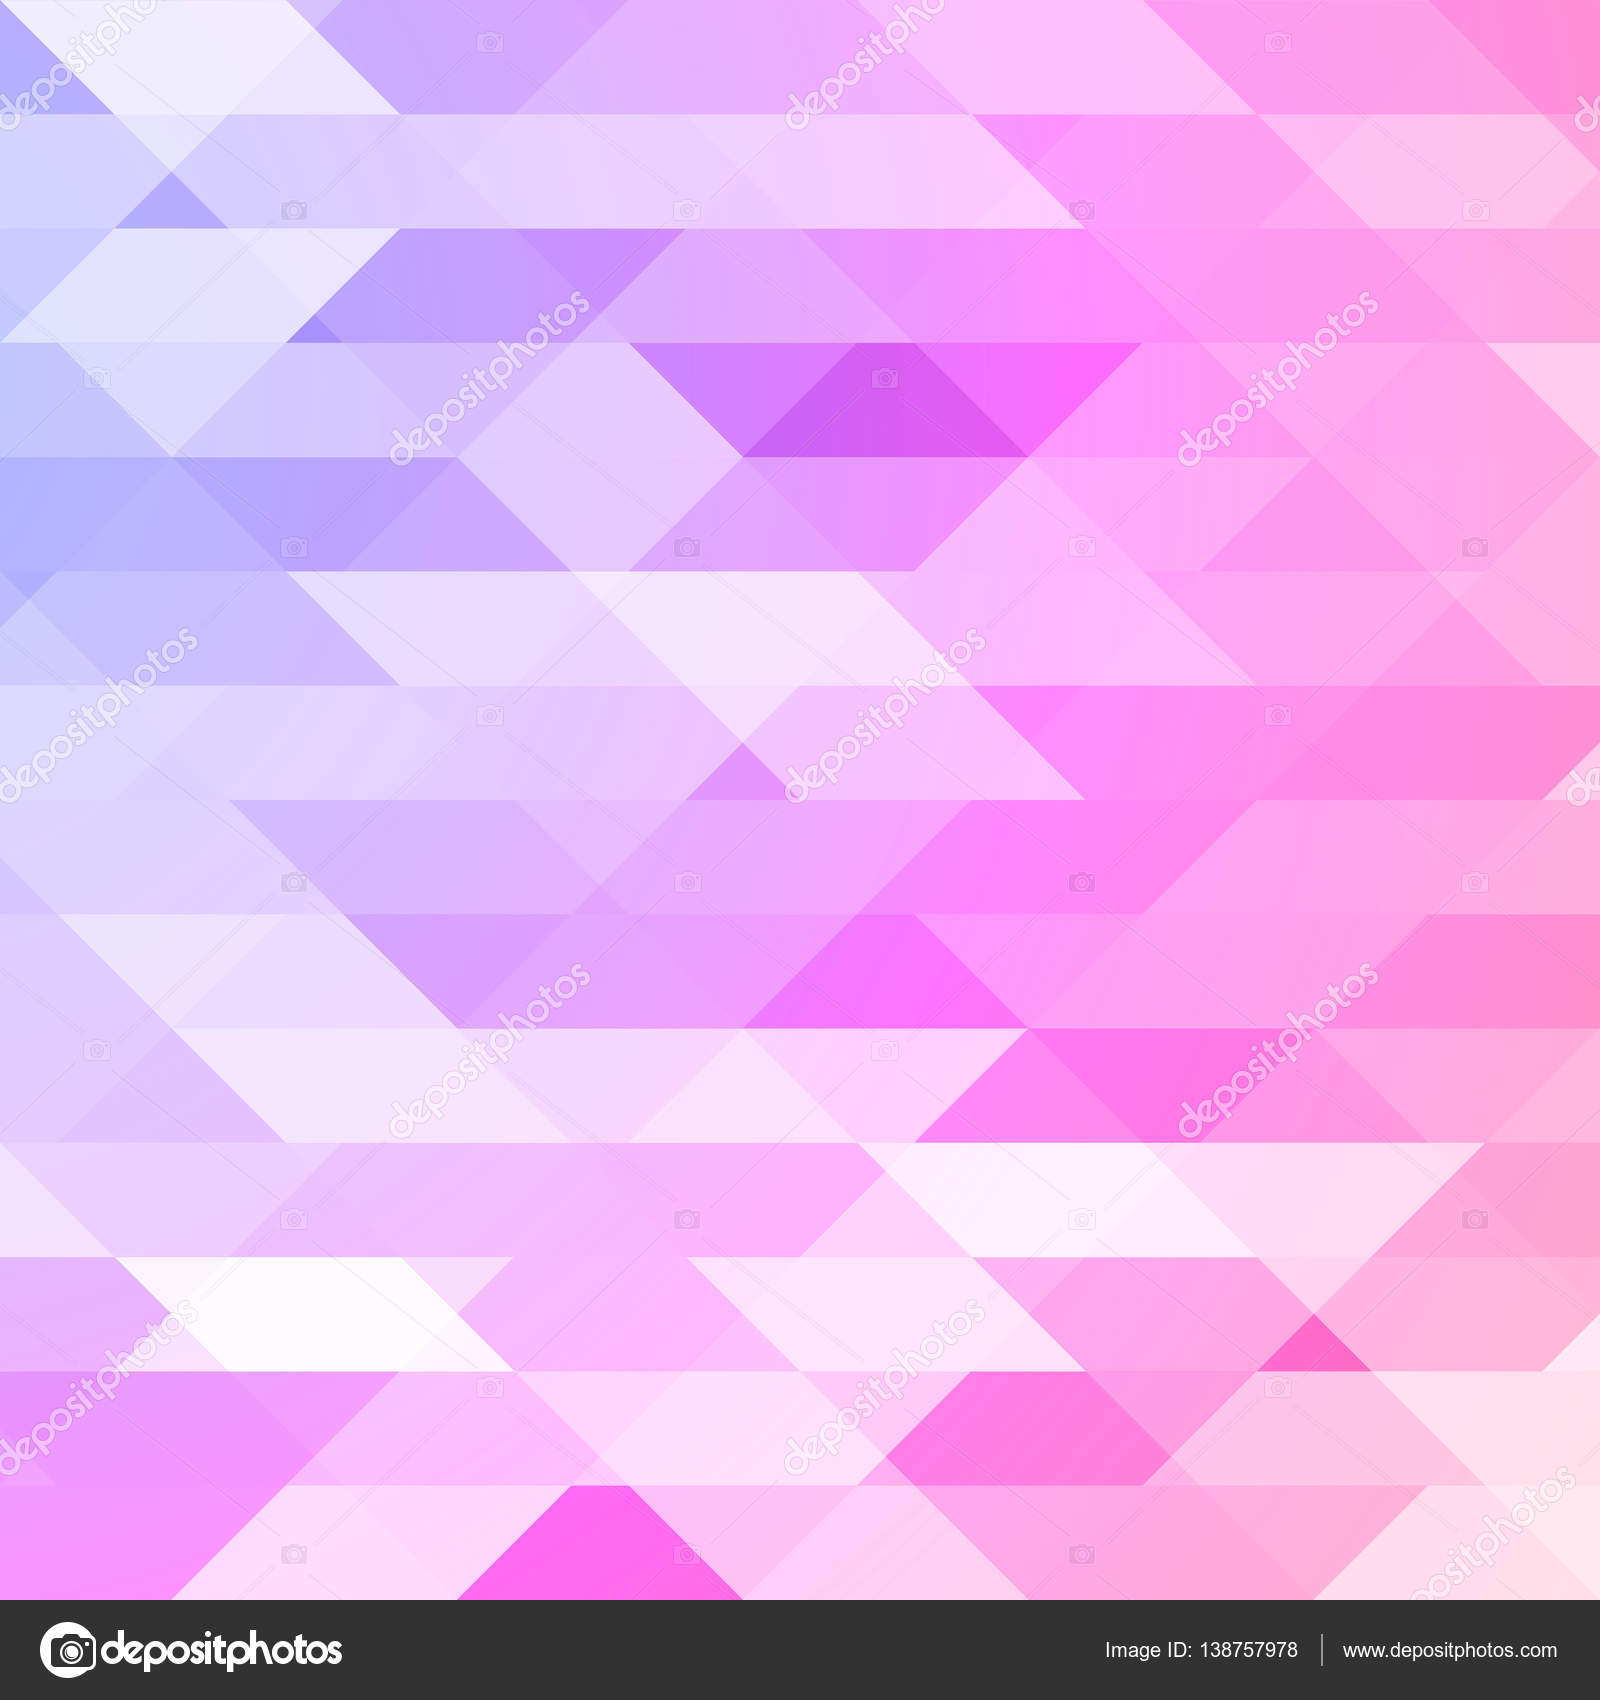 Purple Polygonal Abstract Background: Colorful Pink, Violet Polygonal Background. Triangular